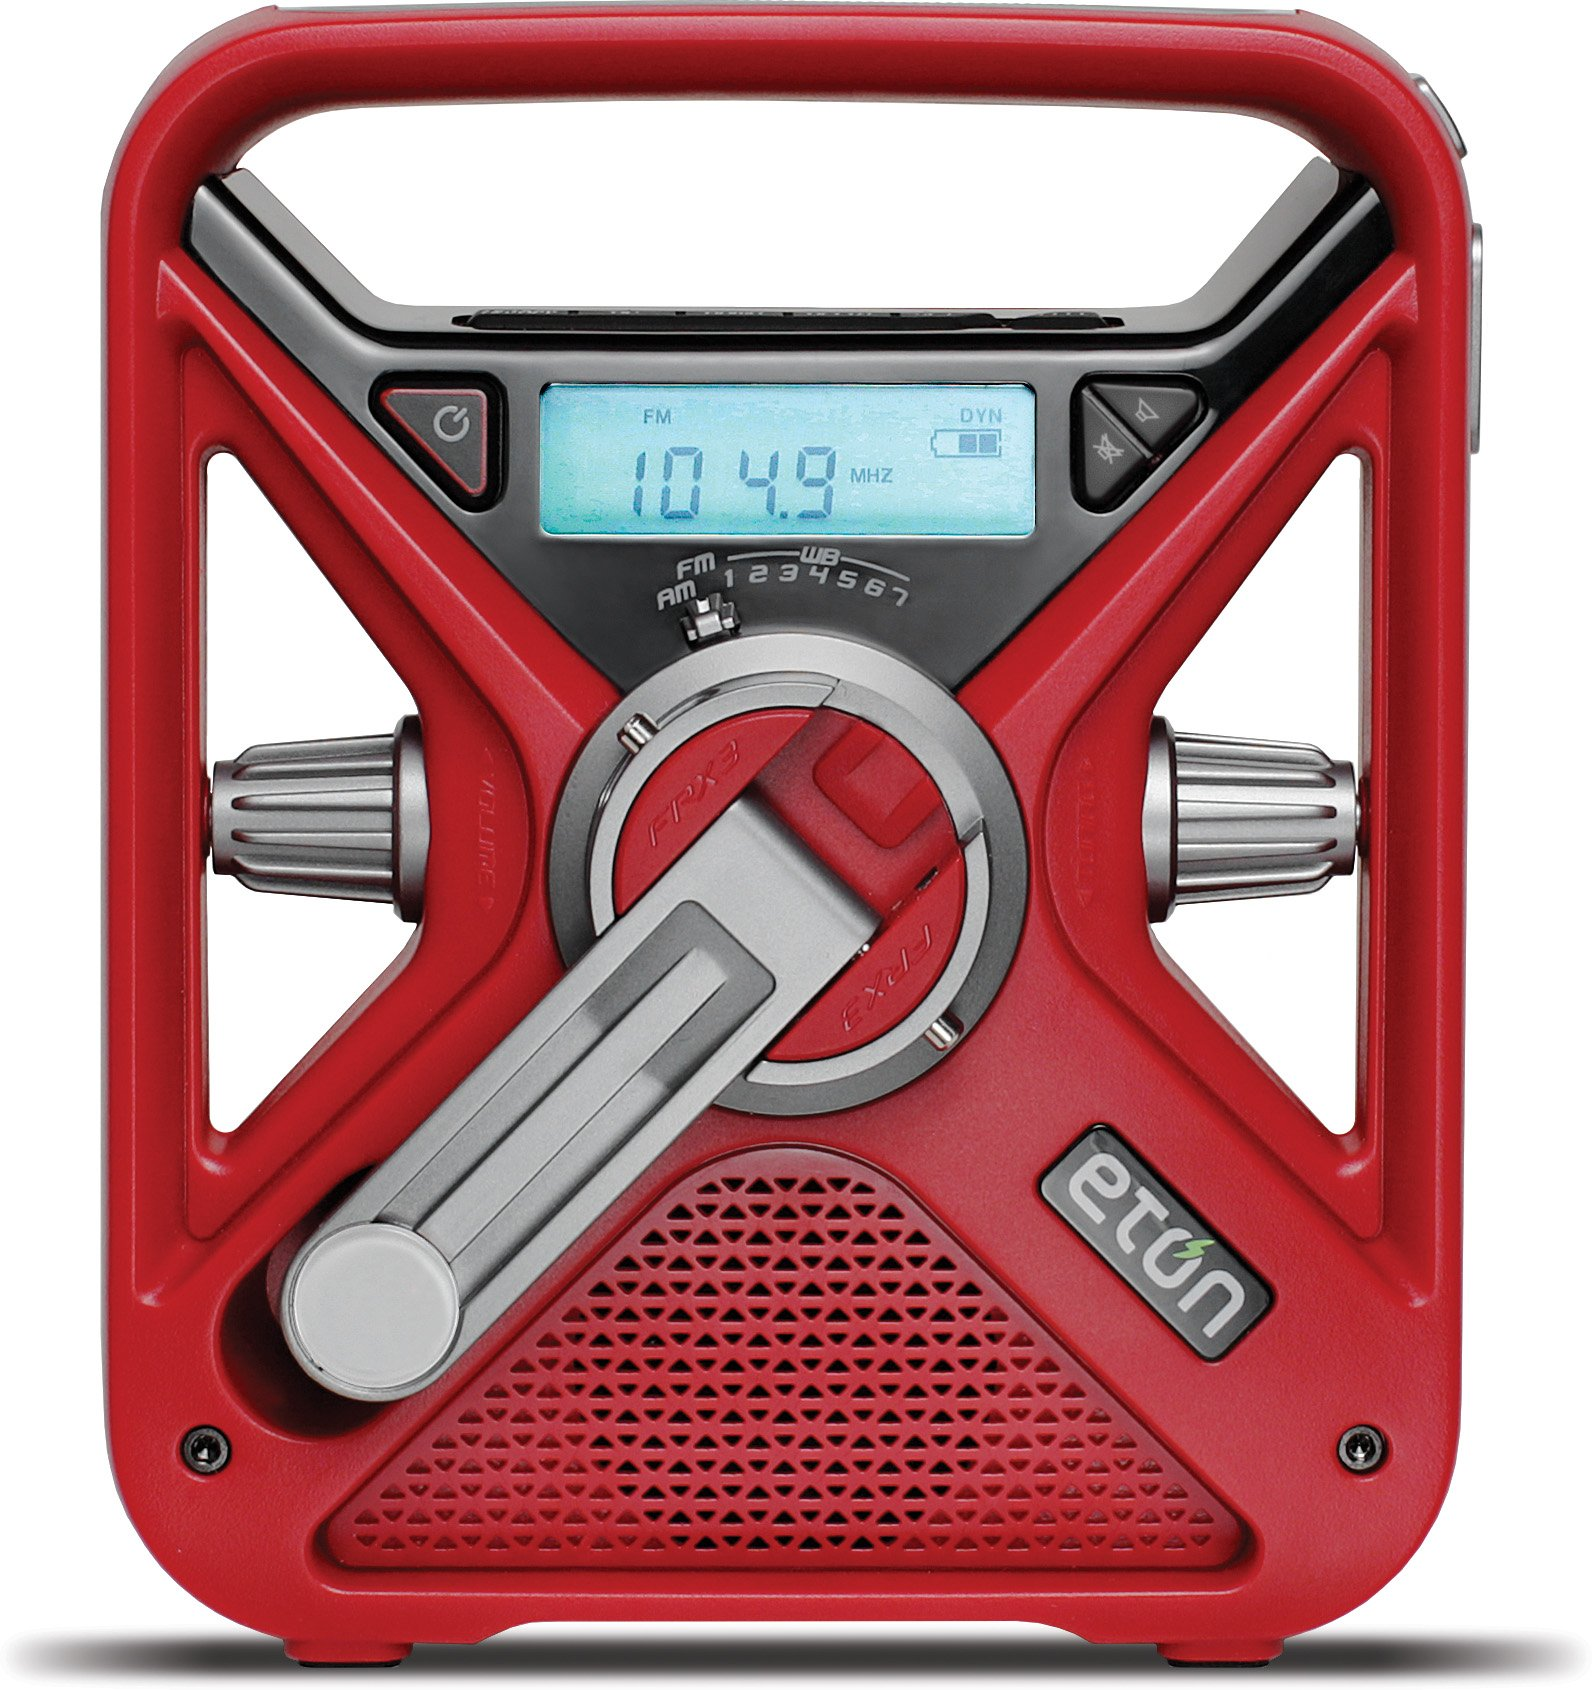 The American Red Cross FRX3 Hand Crank NOAA AM / FM Weather Alert Radio with Smartphone Charger, ARCFRX3WXR by Eton